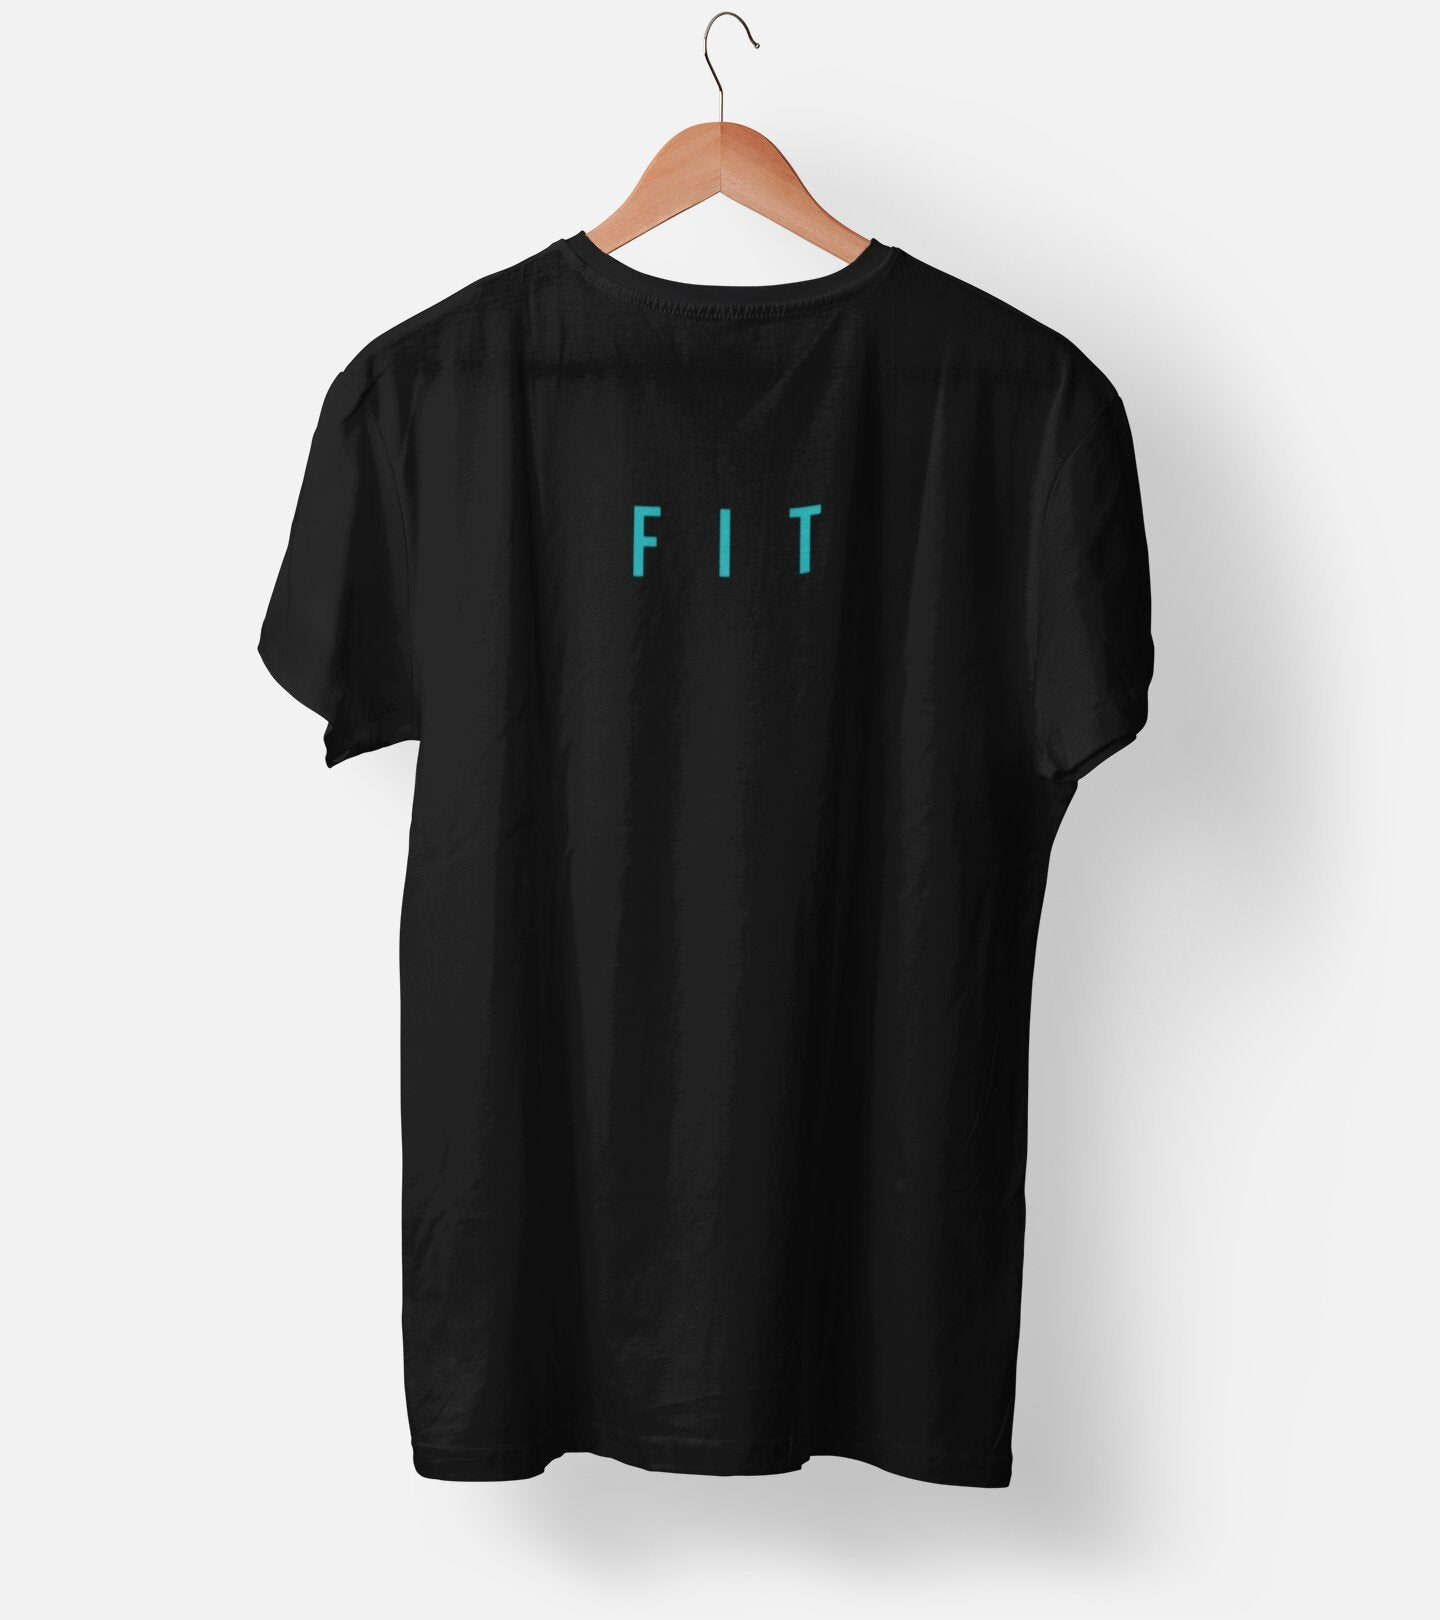 Fit Fitness Men's T-Shirt - Dekh.com